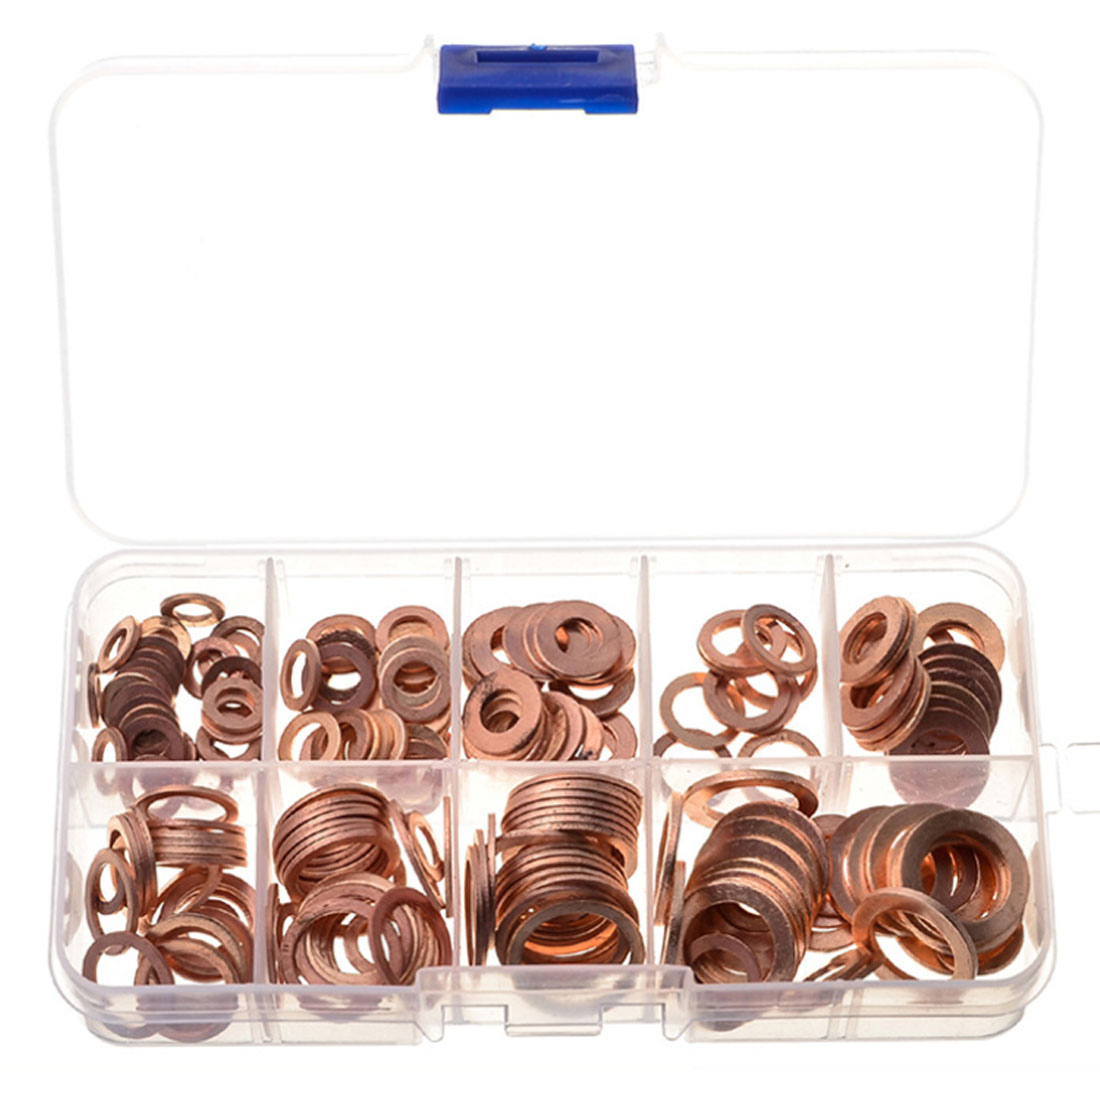 For Hardware Accessories 200pcs/pack Assorted Copper Washer Gasket Sealing Ring Sump Plug Kit M5-m14 With Box Bracing Up The Whole System And Strengthening It Washers